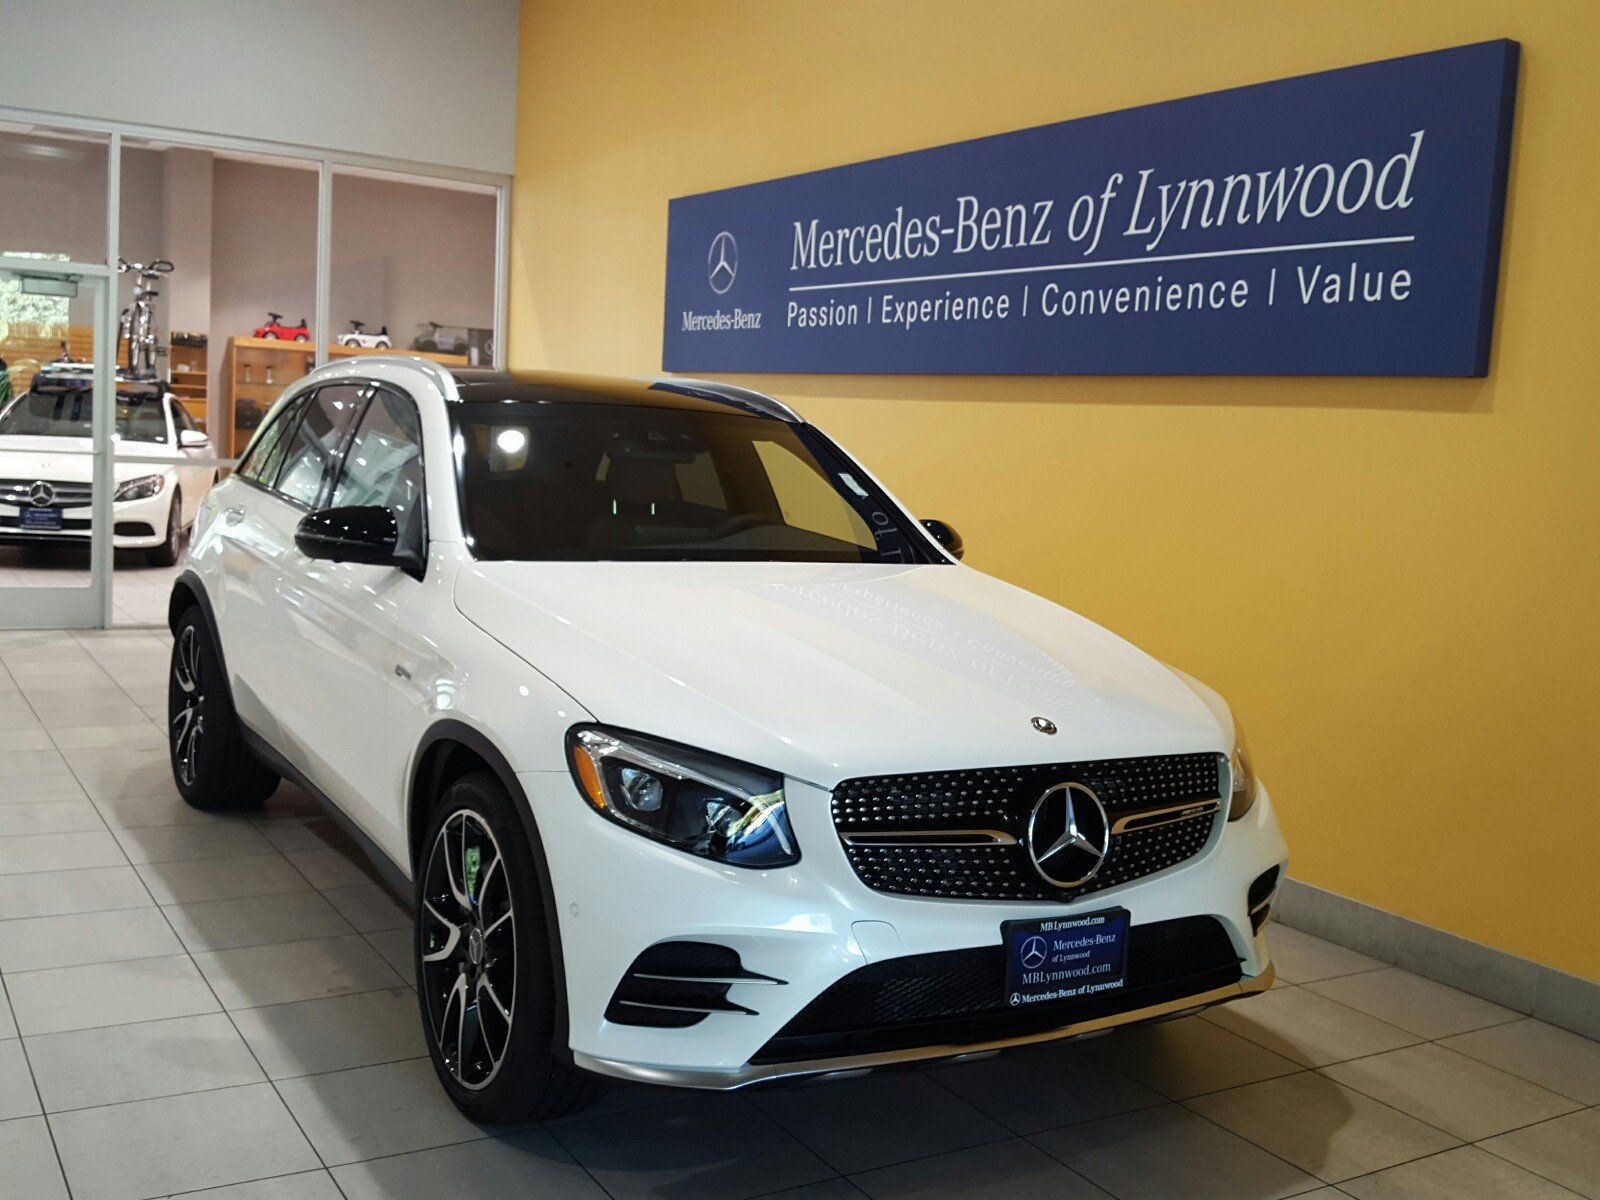 new 2018 mercedes benz glc amg glc 43 4matic sport utility in lynnwood 28168 mercedes benz. Black Bedroom Furniture Sets. Home Design Ideas